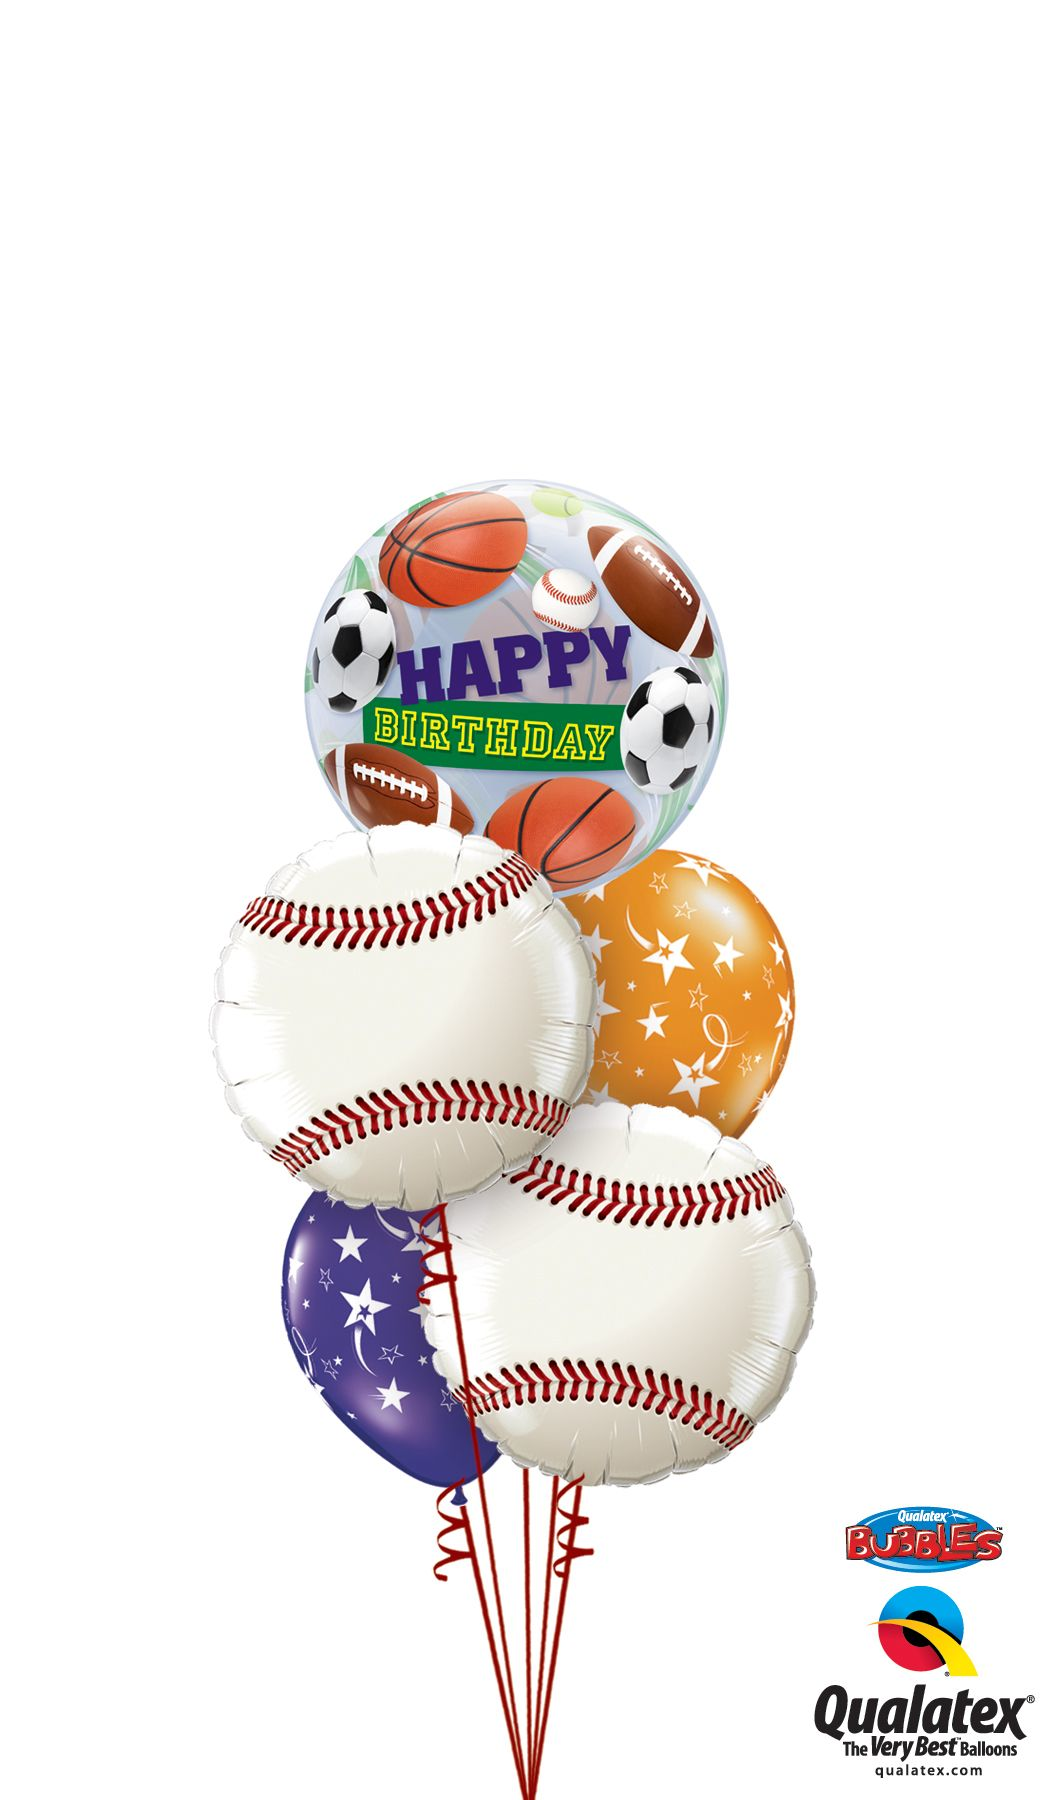 This Is The Best Way To Wish A Sport Fan Happy Birthday A Unique Qualatex Bubble Balloon Surrounded By Baseball Microfoil Qualatex Balloons Qualatex Balloons